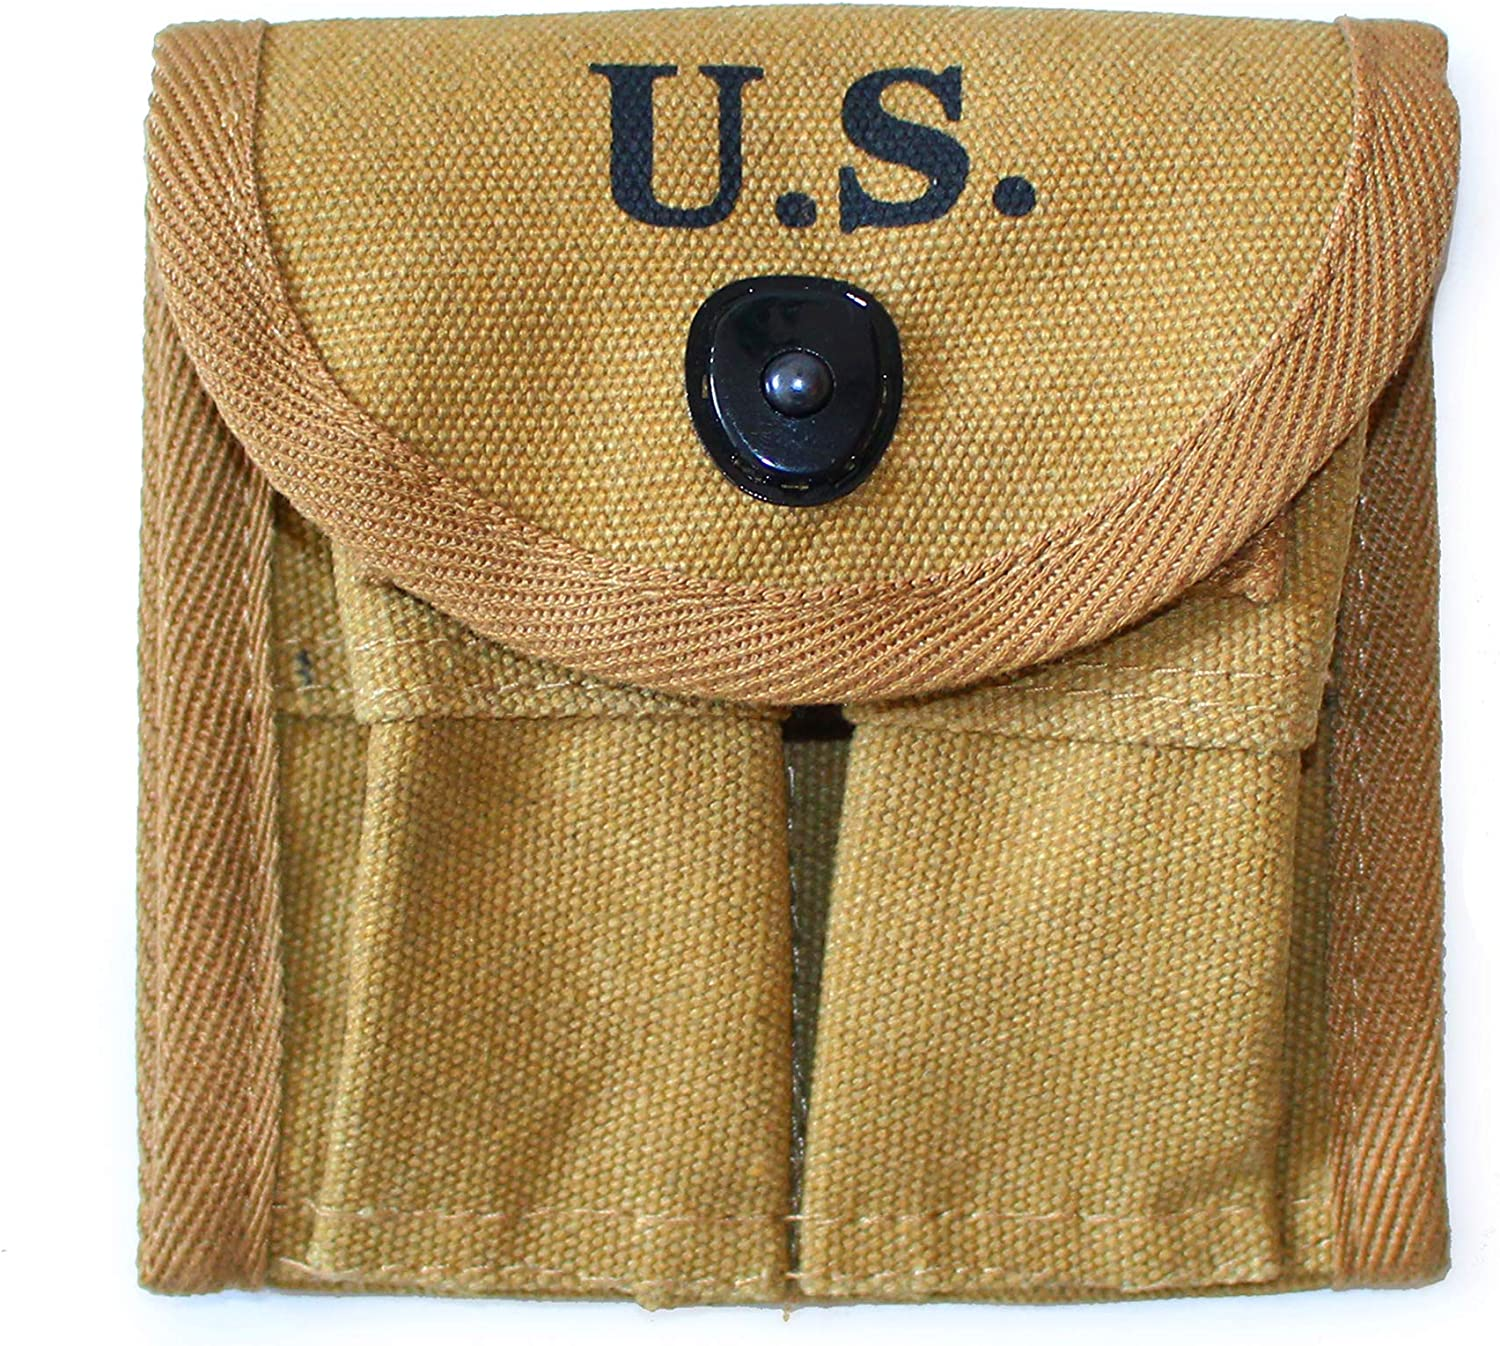 ANQIAO WW2 US M1 Carbine Ammo Pouch 2 Cells Magazine Bag Buttstock Khaki Color